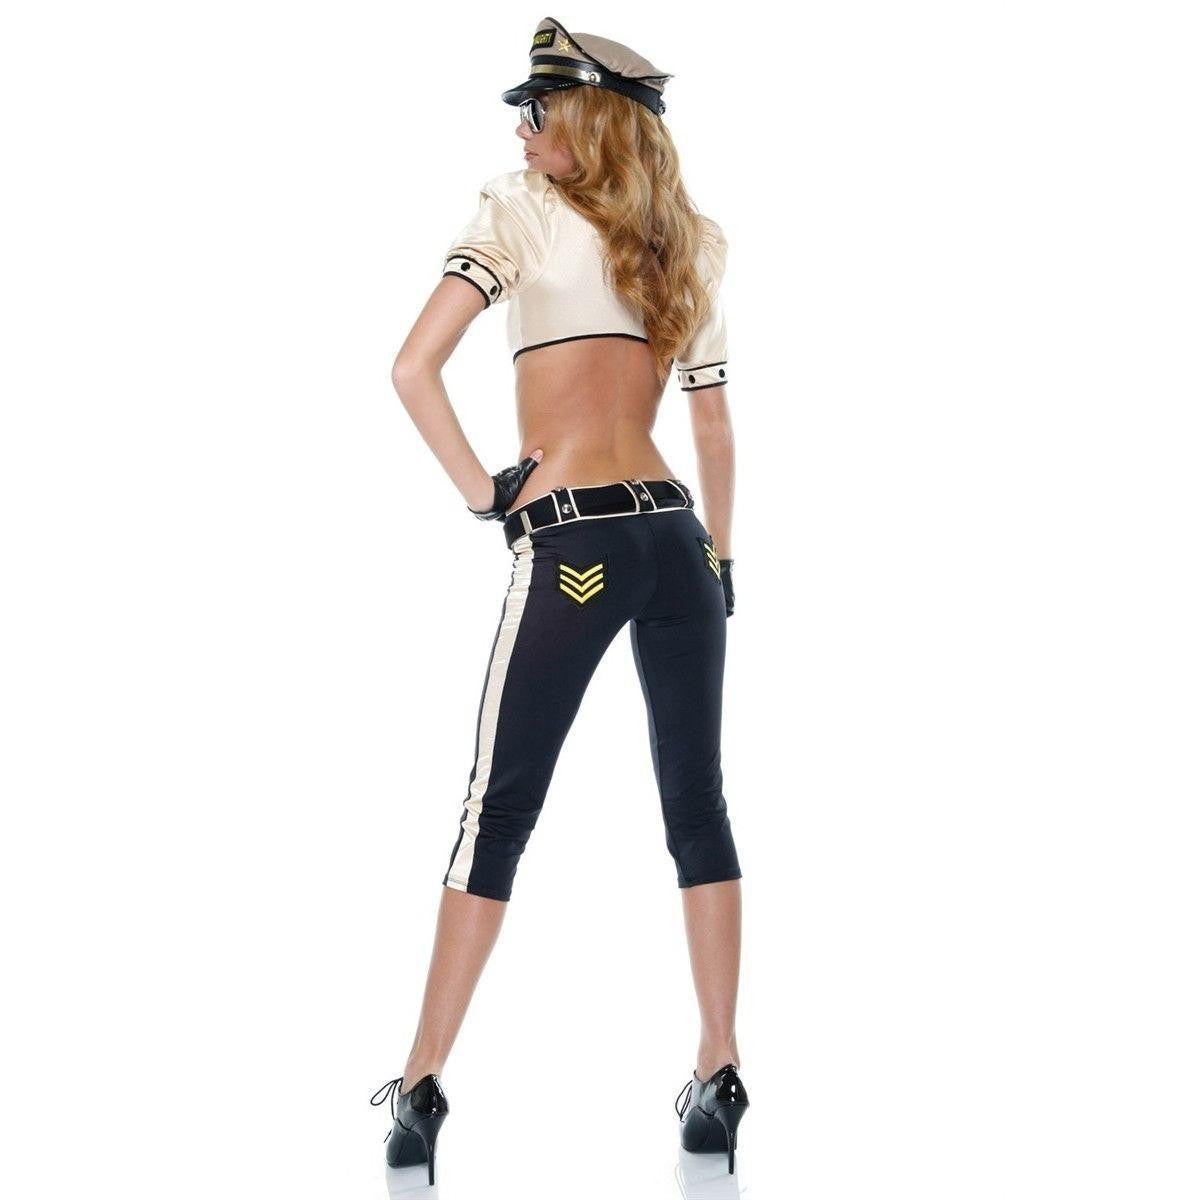 Sheriff five piece costume for <span class=money>€49.95 EUR</span> at Flirtywomen